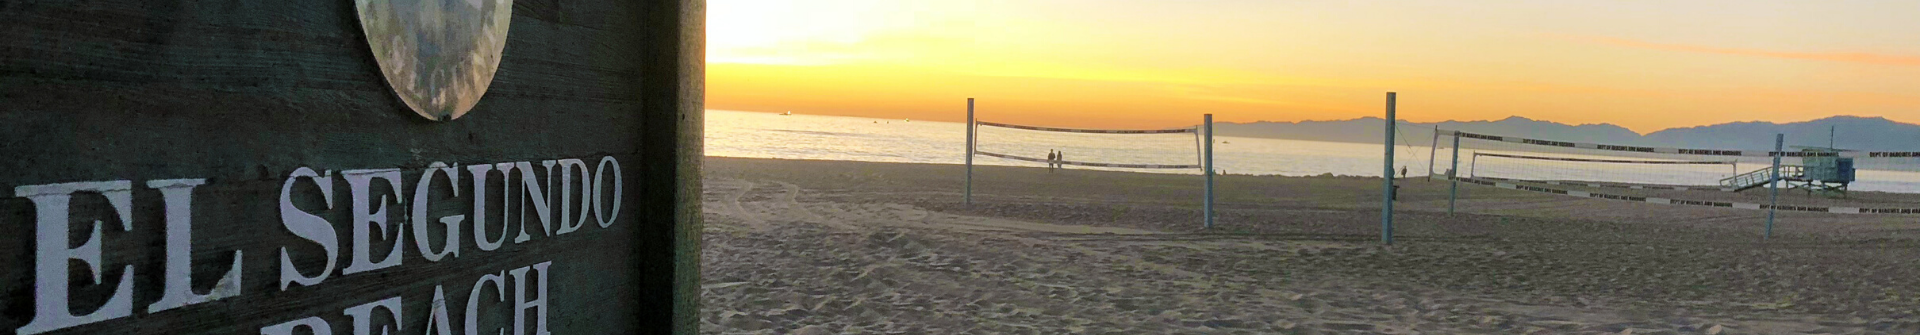 El Segundo Beach sign at sunset with volleyball nets